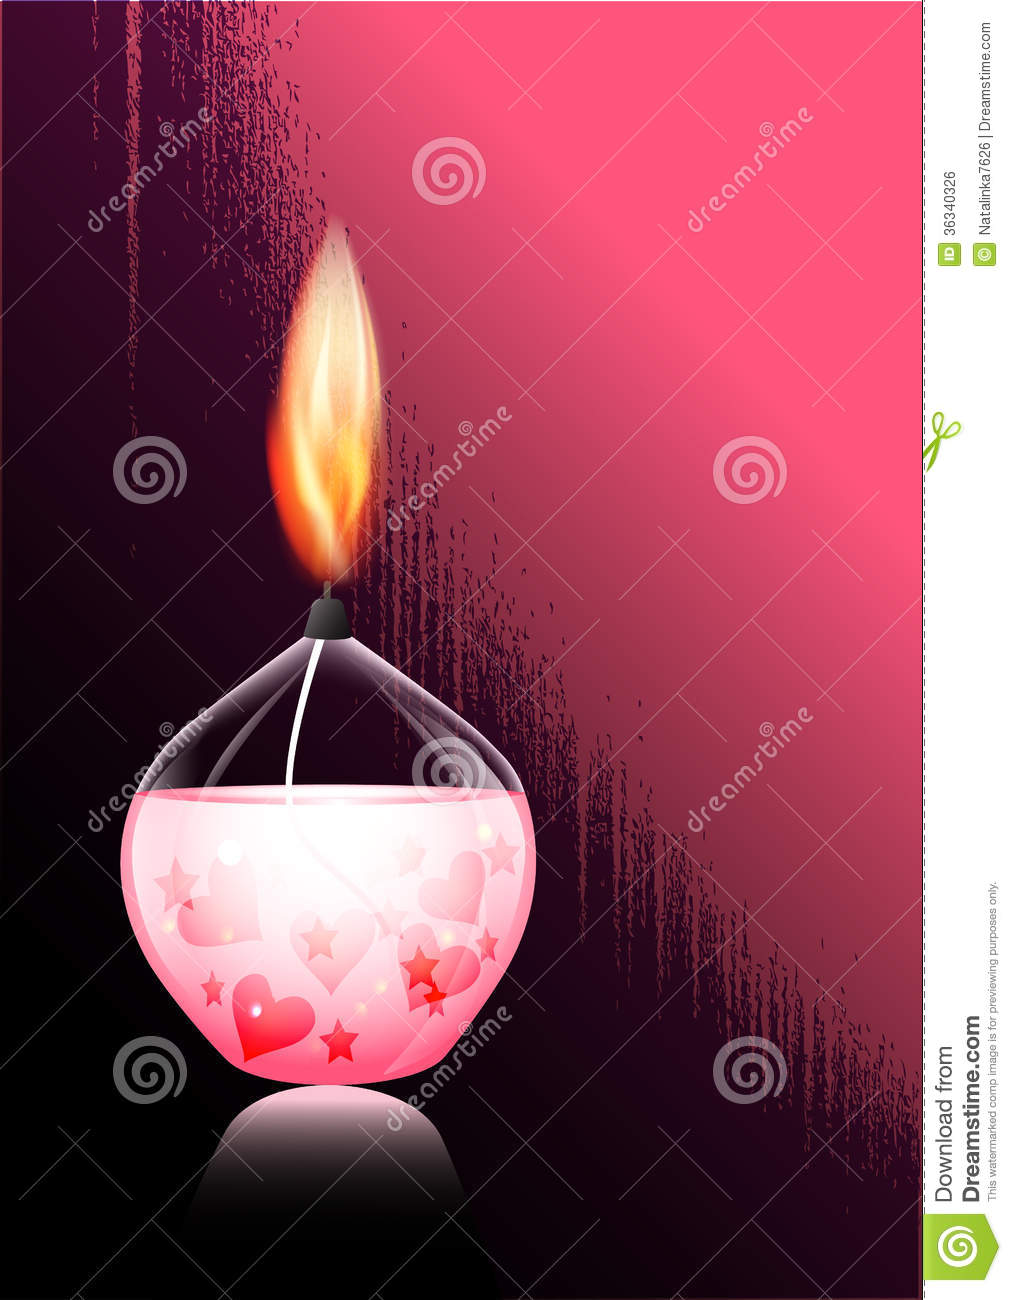 Romantic Candle Royalty Free Stock Image - Image: 36340326